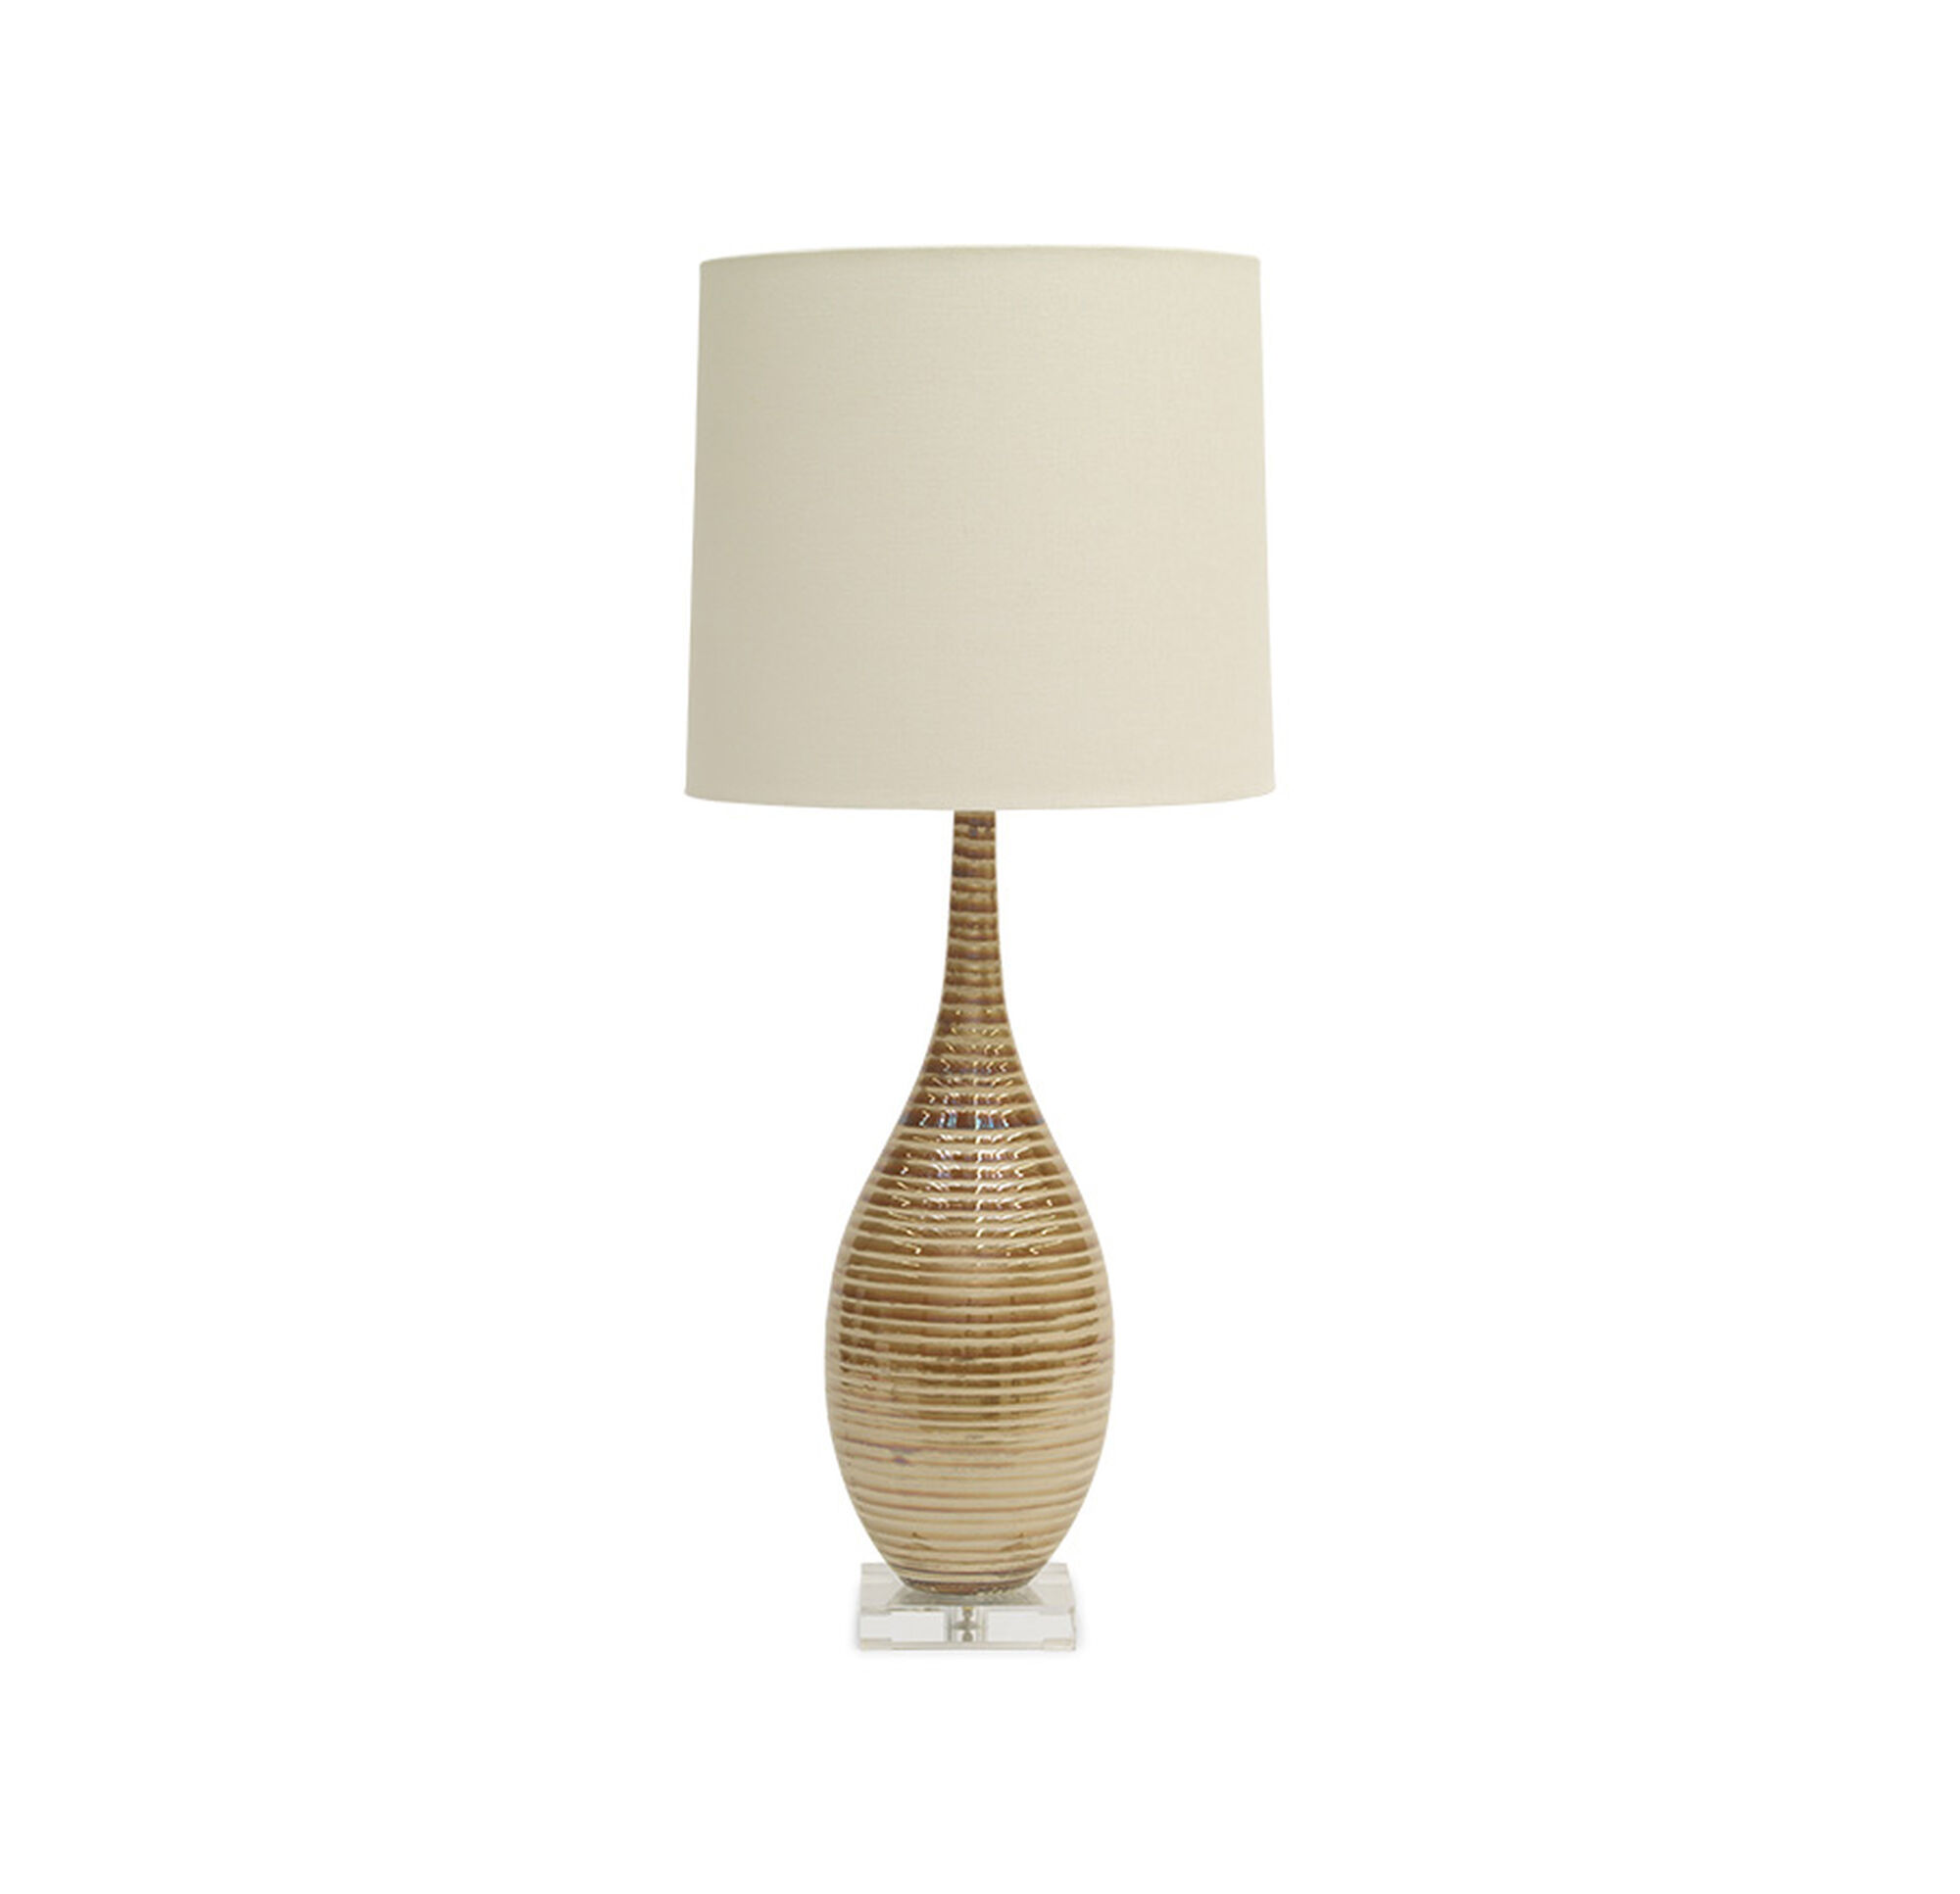 Bronze and silver table lamp ambience accent lamp table lamps lamps - Belice Table Lamp Hi Res